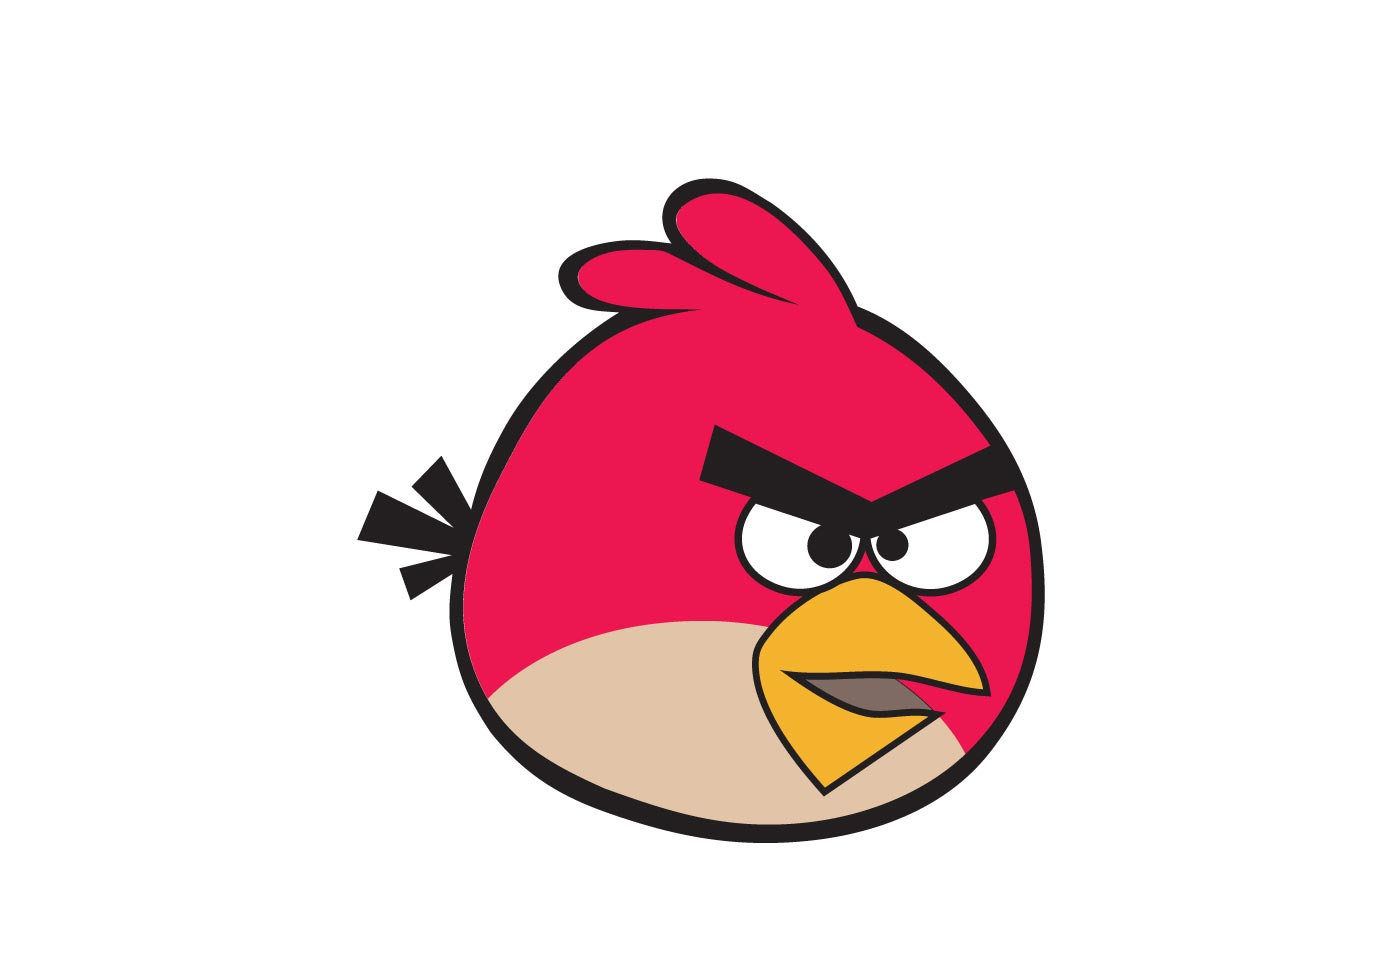 Angry Birds Vector Images Image collections - Wallpaper ...